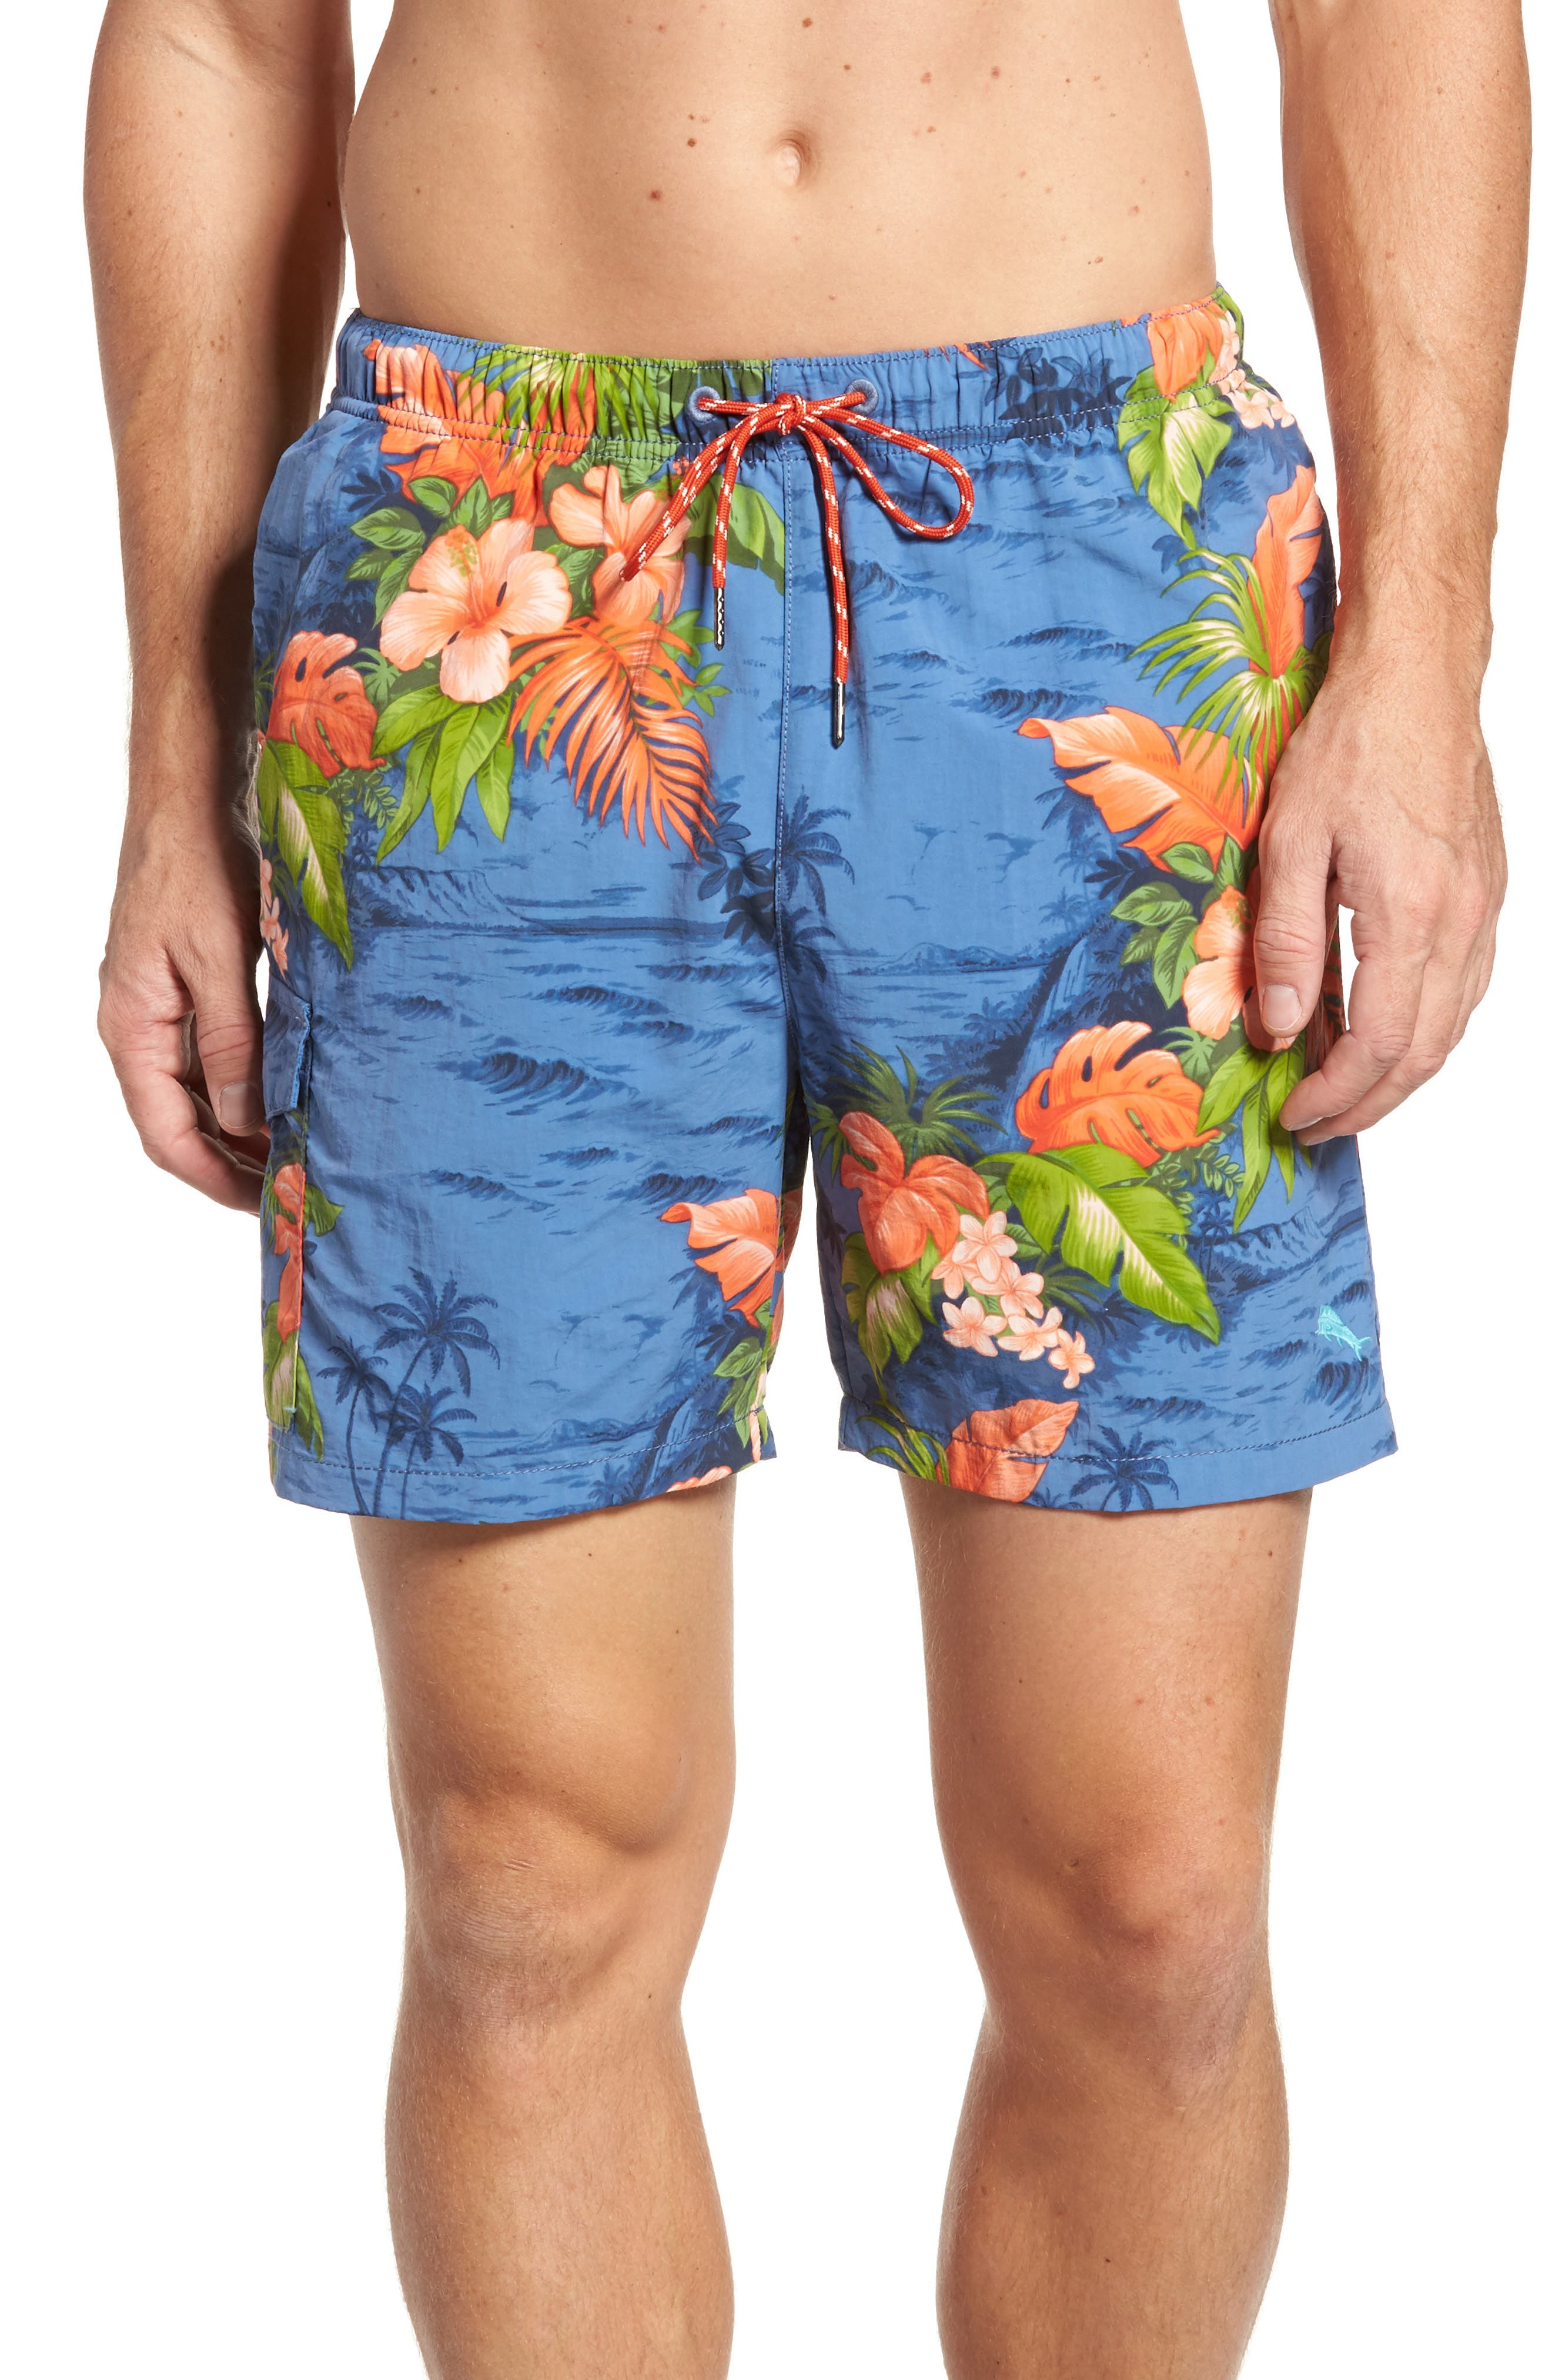 Naples Fiji Ferns Swim Trunks,                             Main thumbnail 1, color,                             Dockside Blue